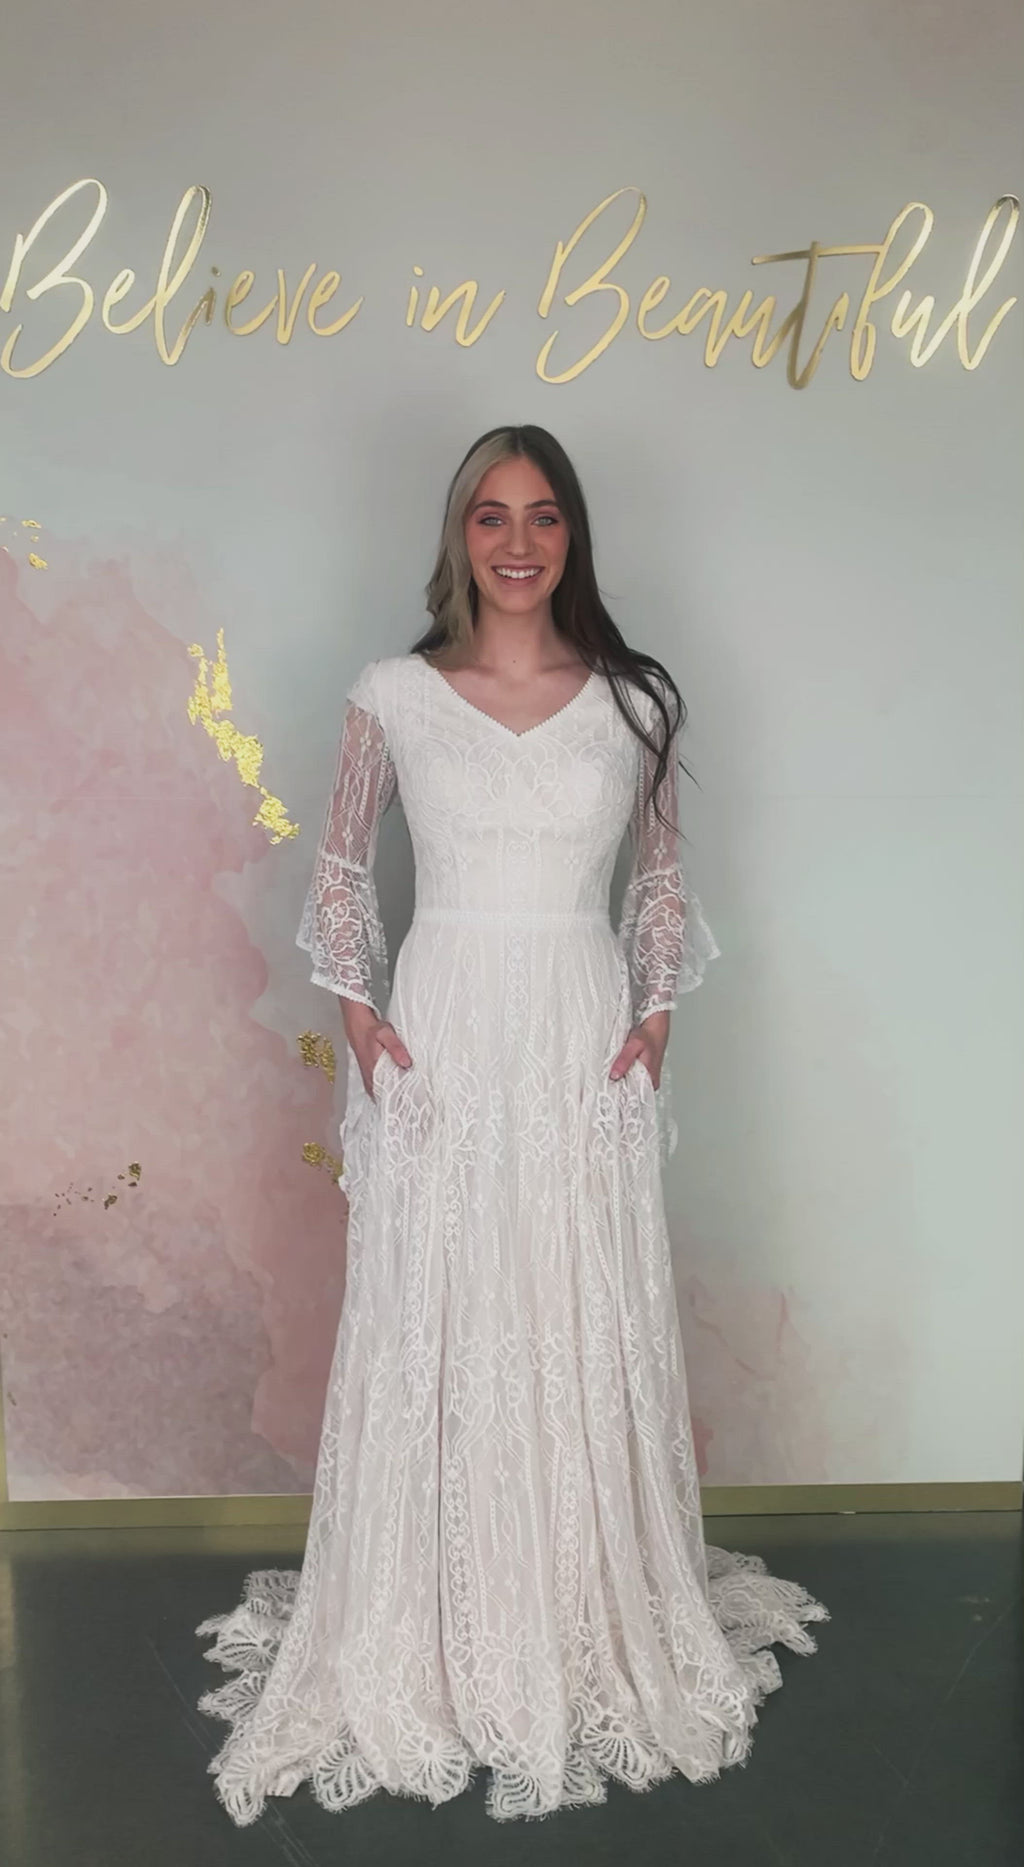 A video featuring our Arwen wedding dress with its full lace A-line skirt, whimsical bell sleeves, and eyelash lace detailing at the hem.